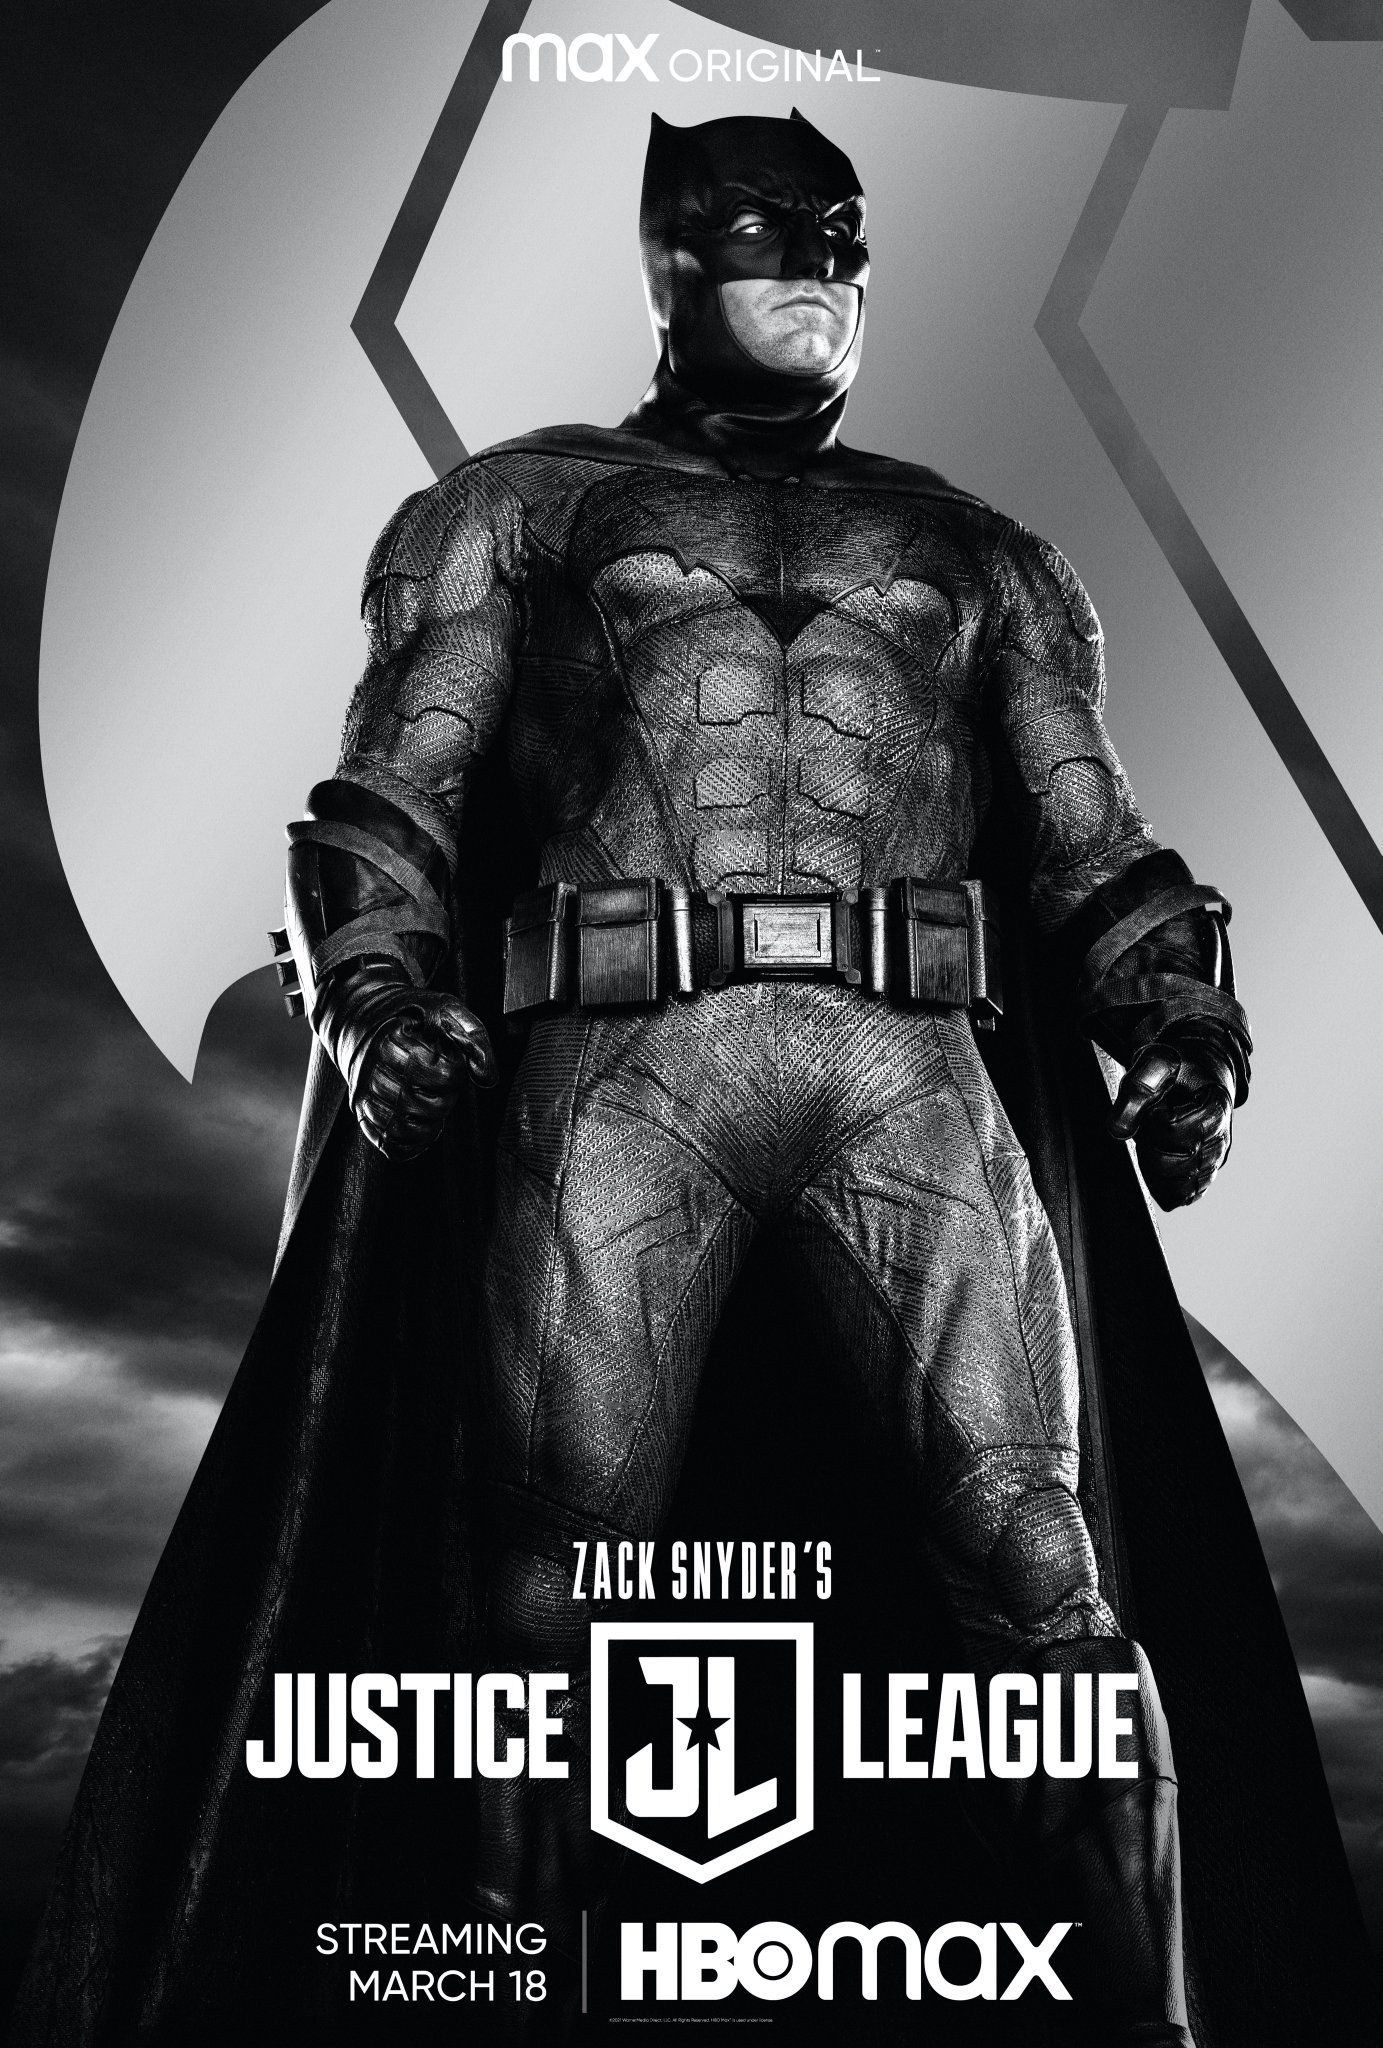 Zack Snyder On Twitter In 2021 Justice League Batman Justice League 2017